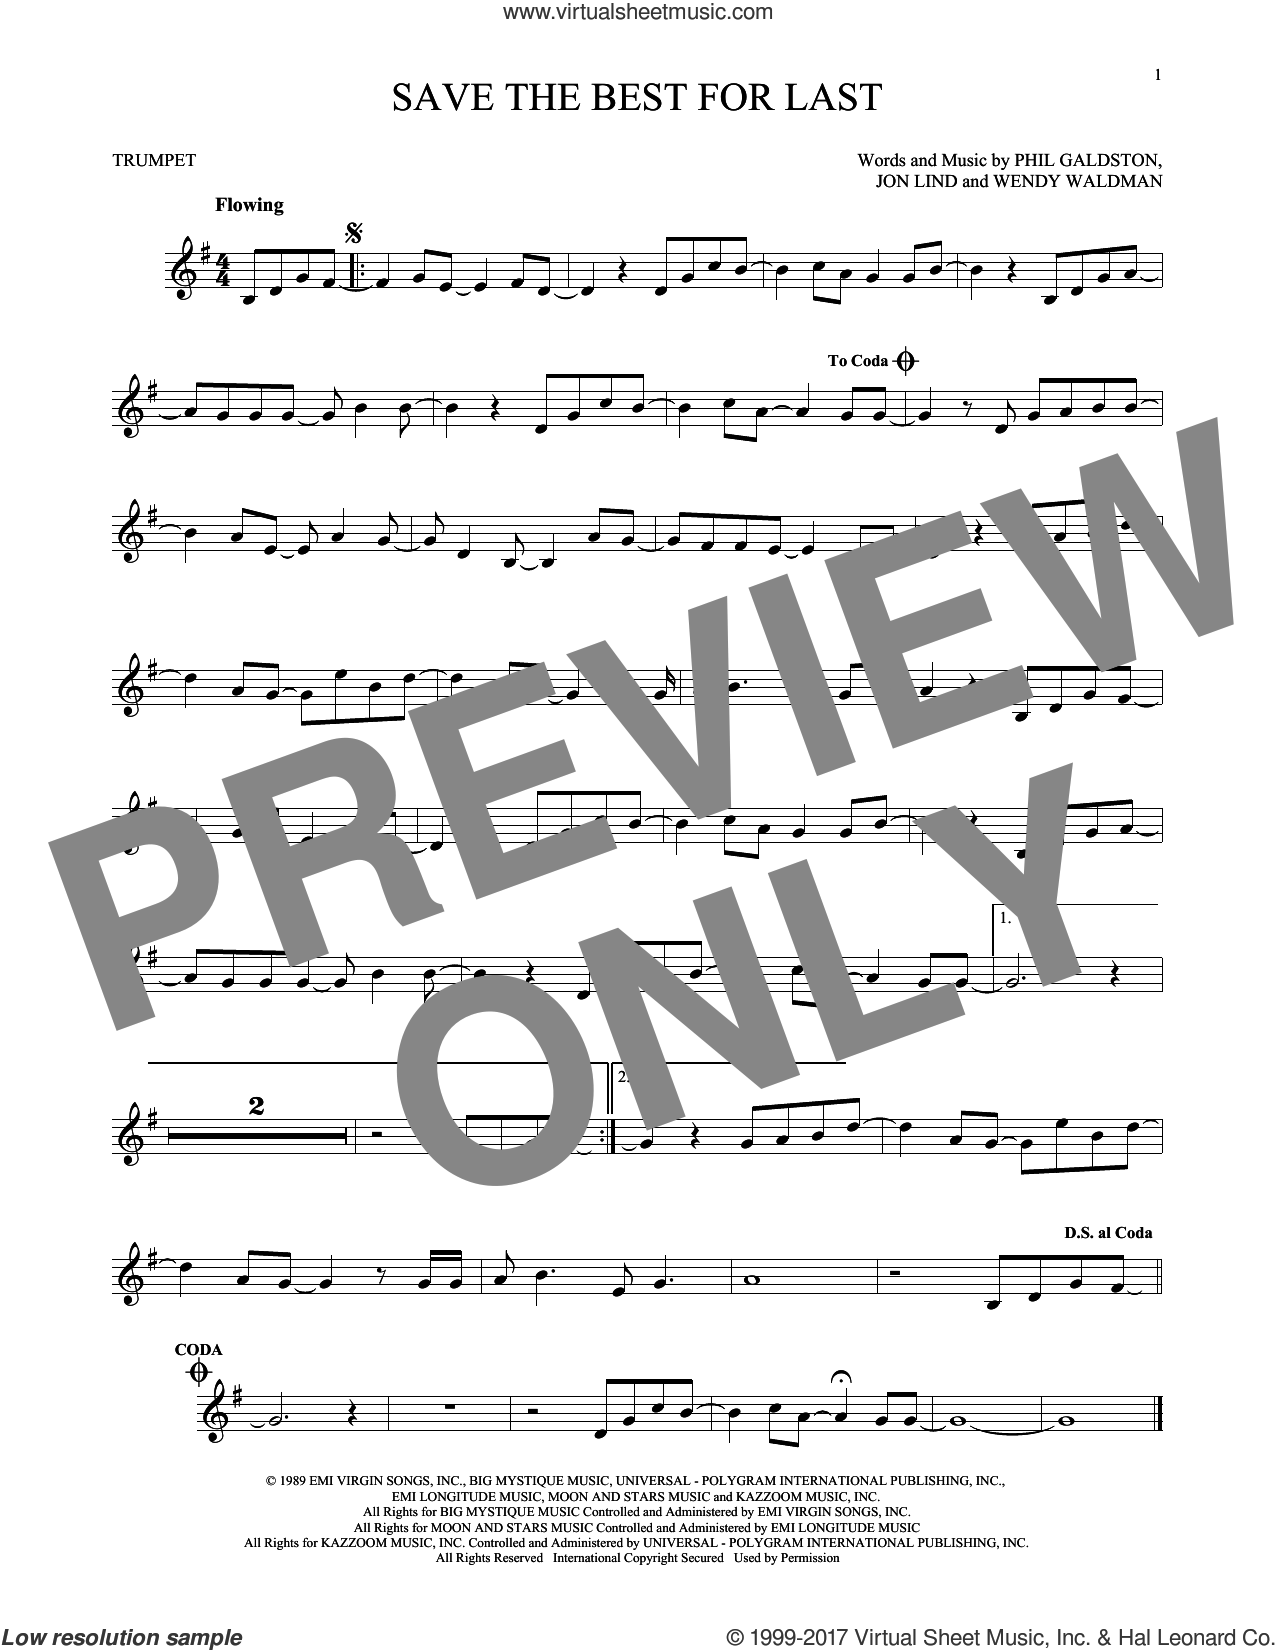 Save The Best For Last sheet music for trumpet solo by Vanessa Williams, Jon Lind, Phil Galdston and Wendy Waldman, intermediate skill level